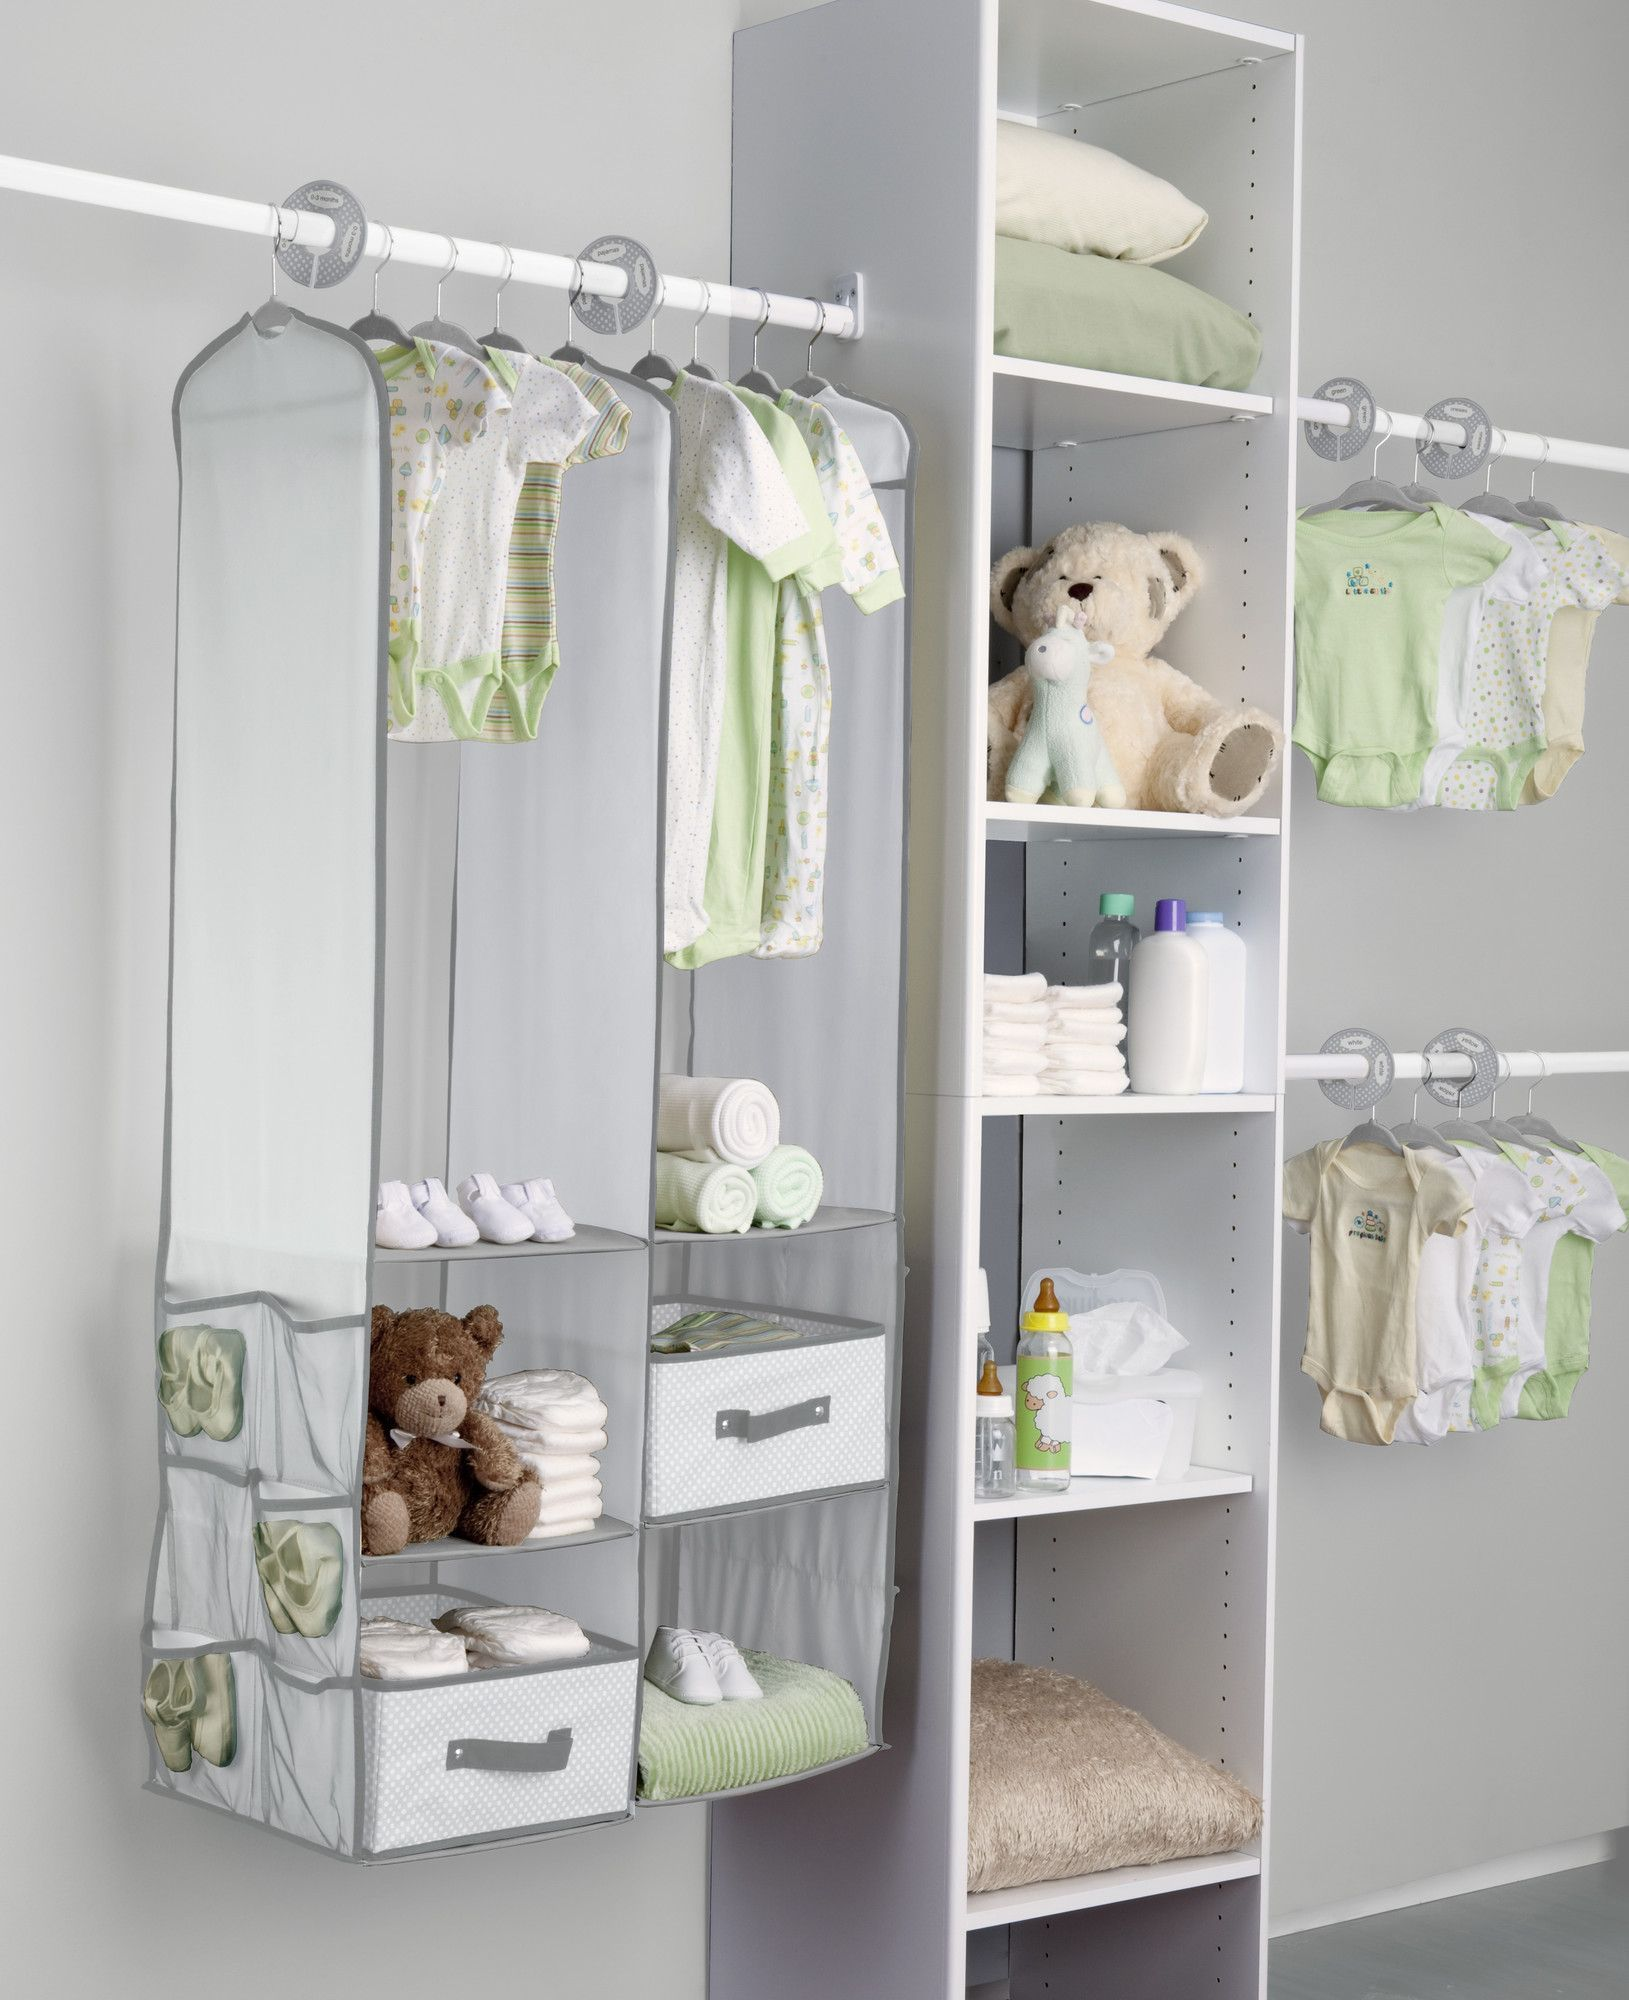 Delta Children 24 Piece Nursery Closet Organizer Set | Wayfair